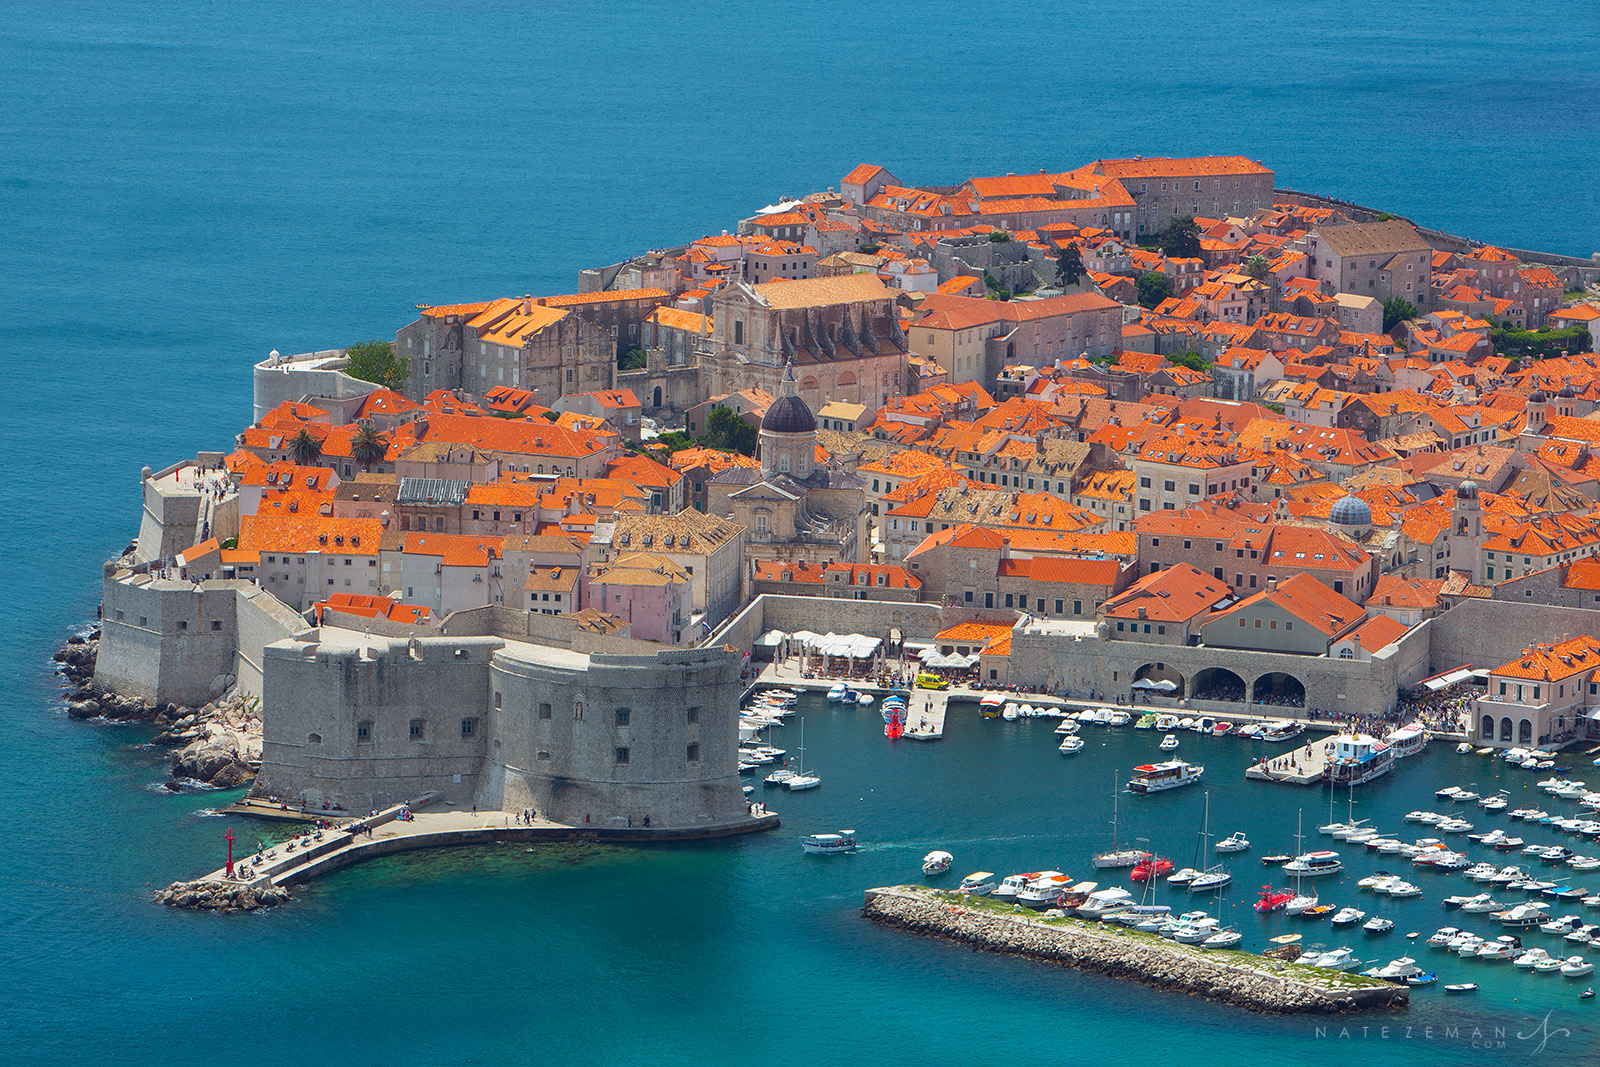 dubrovnik, dalmatia, dalmatian coast, city, sea, adriatic, king's landing, game of thrones, filming location, , photo